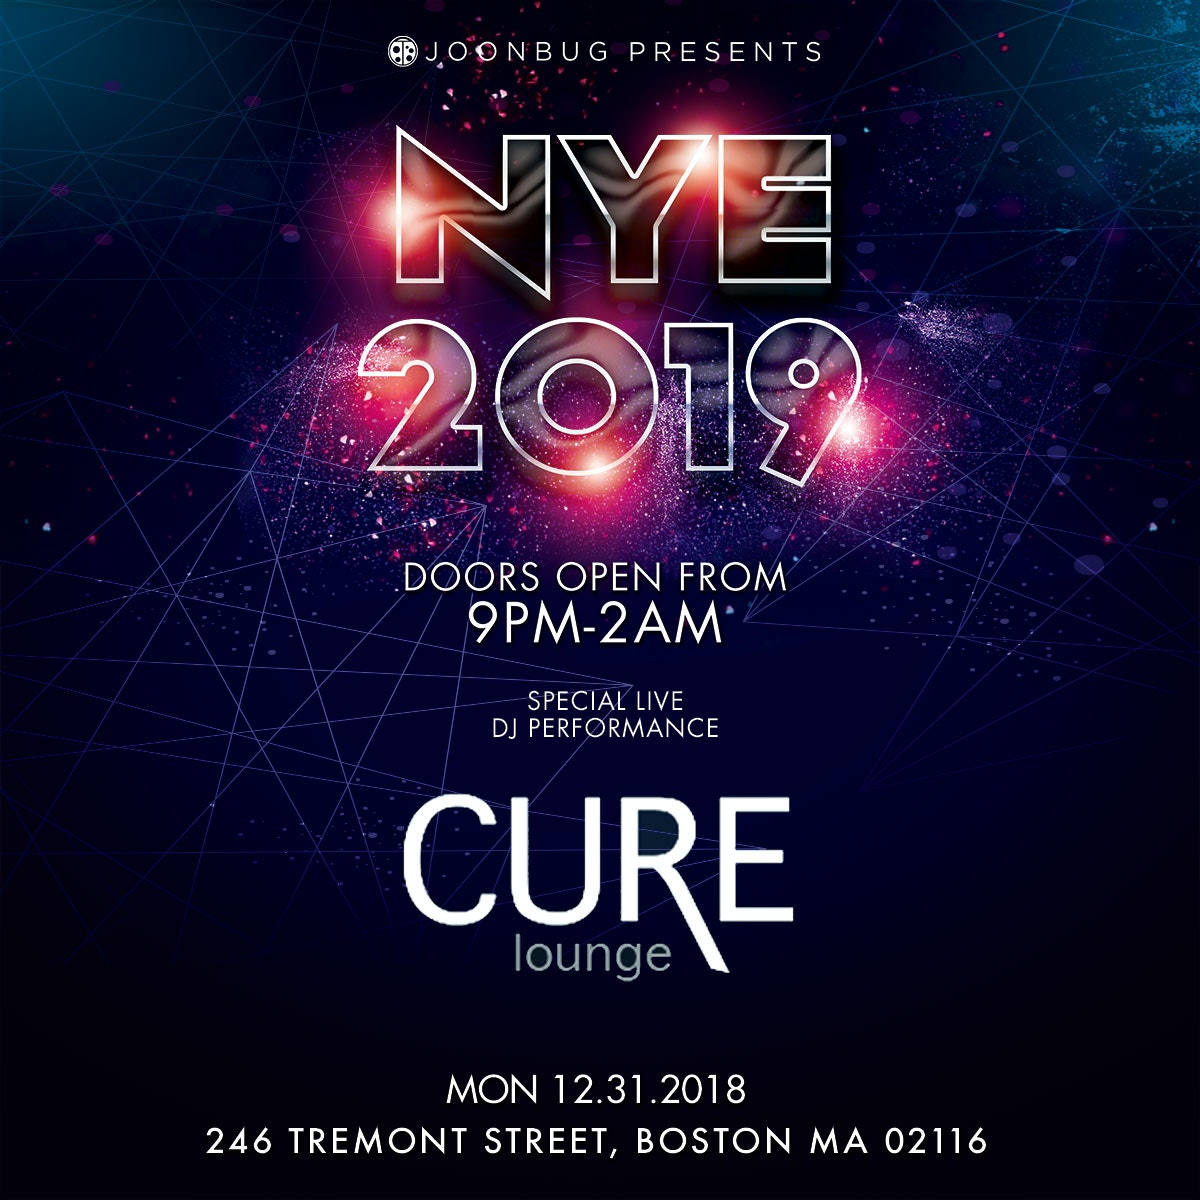 Cure Lounge New Years Flyer